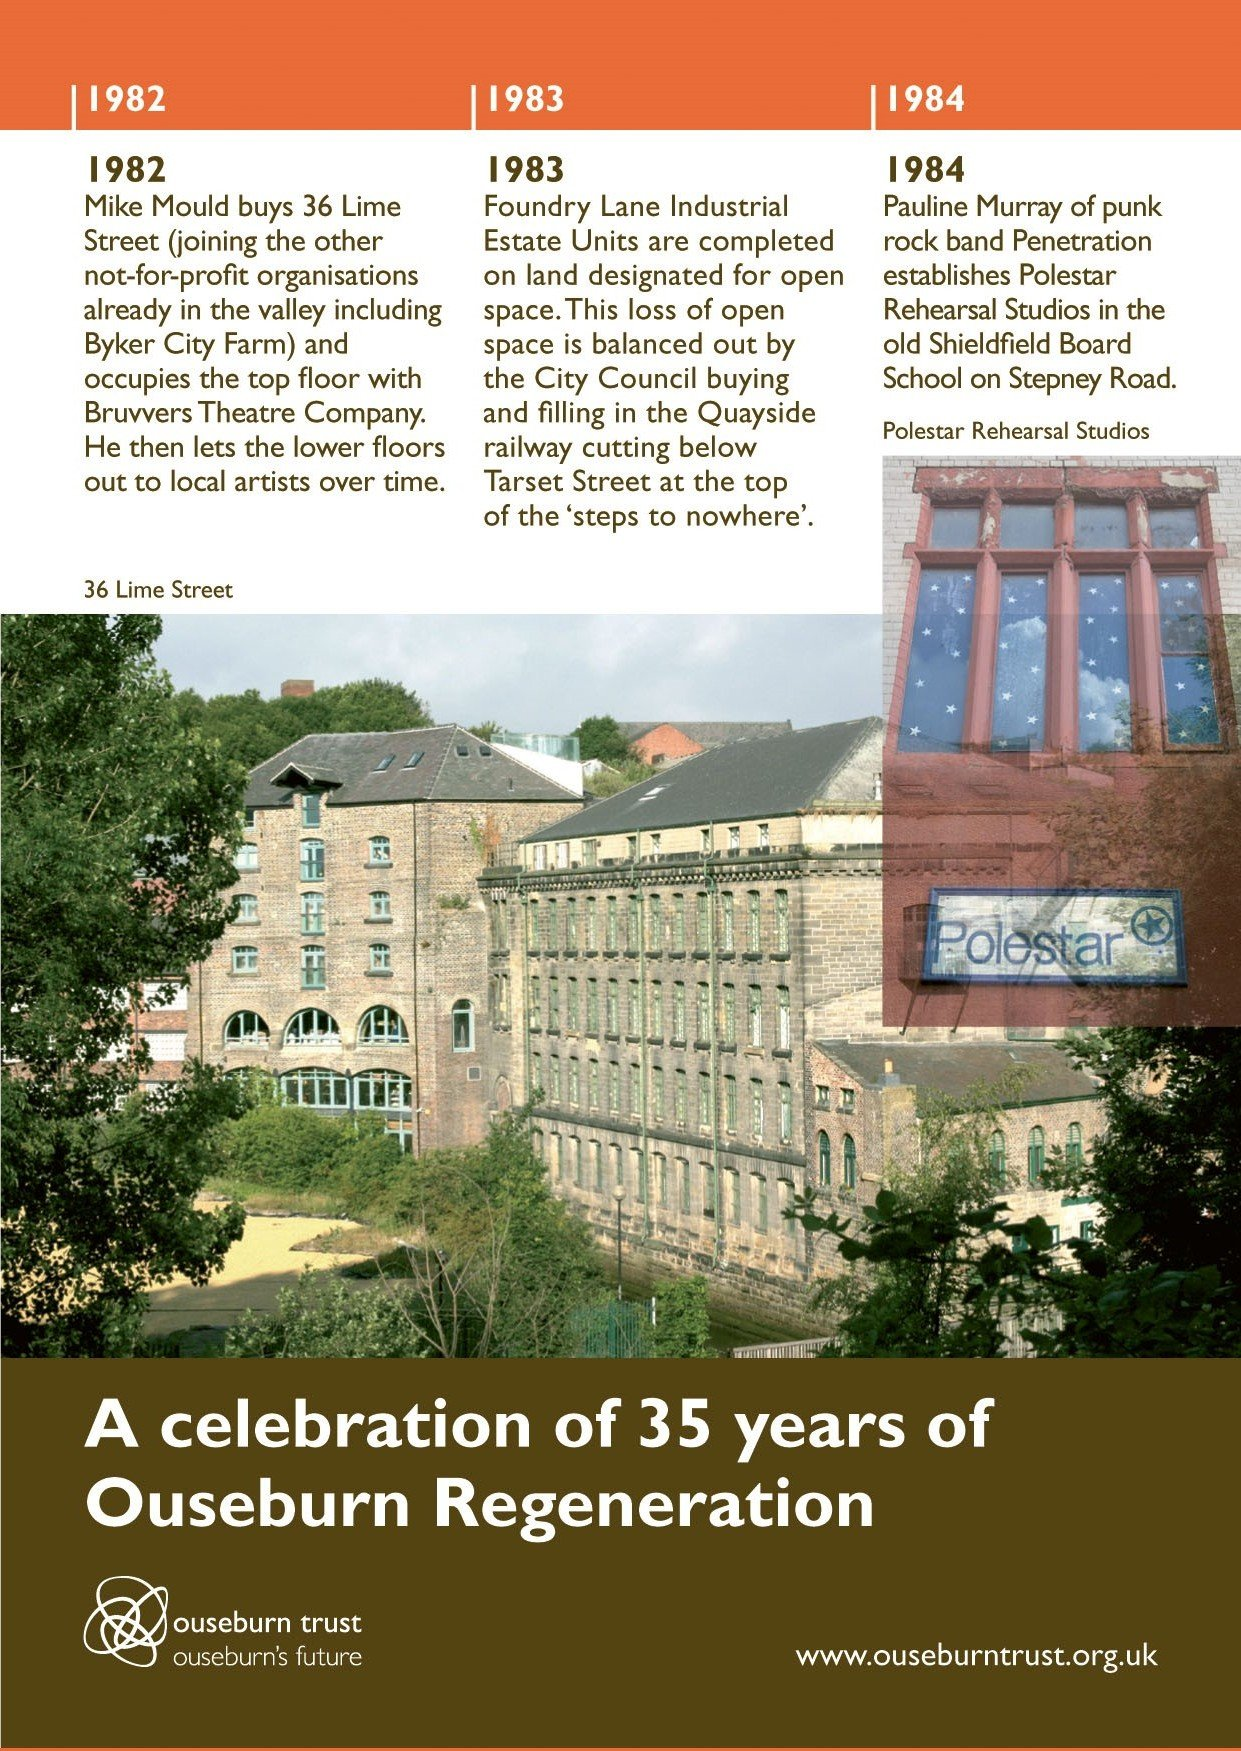 35 year Ouseburn Regeneration cover